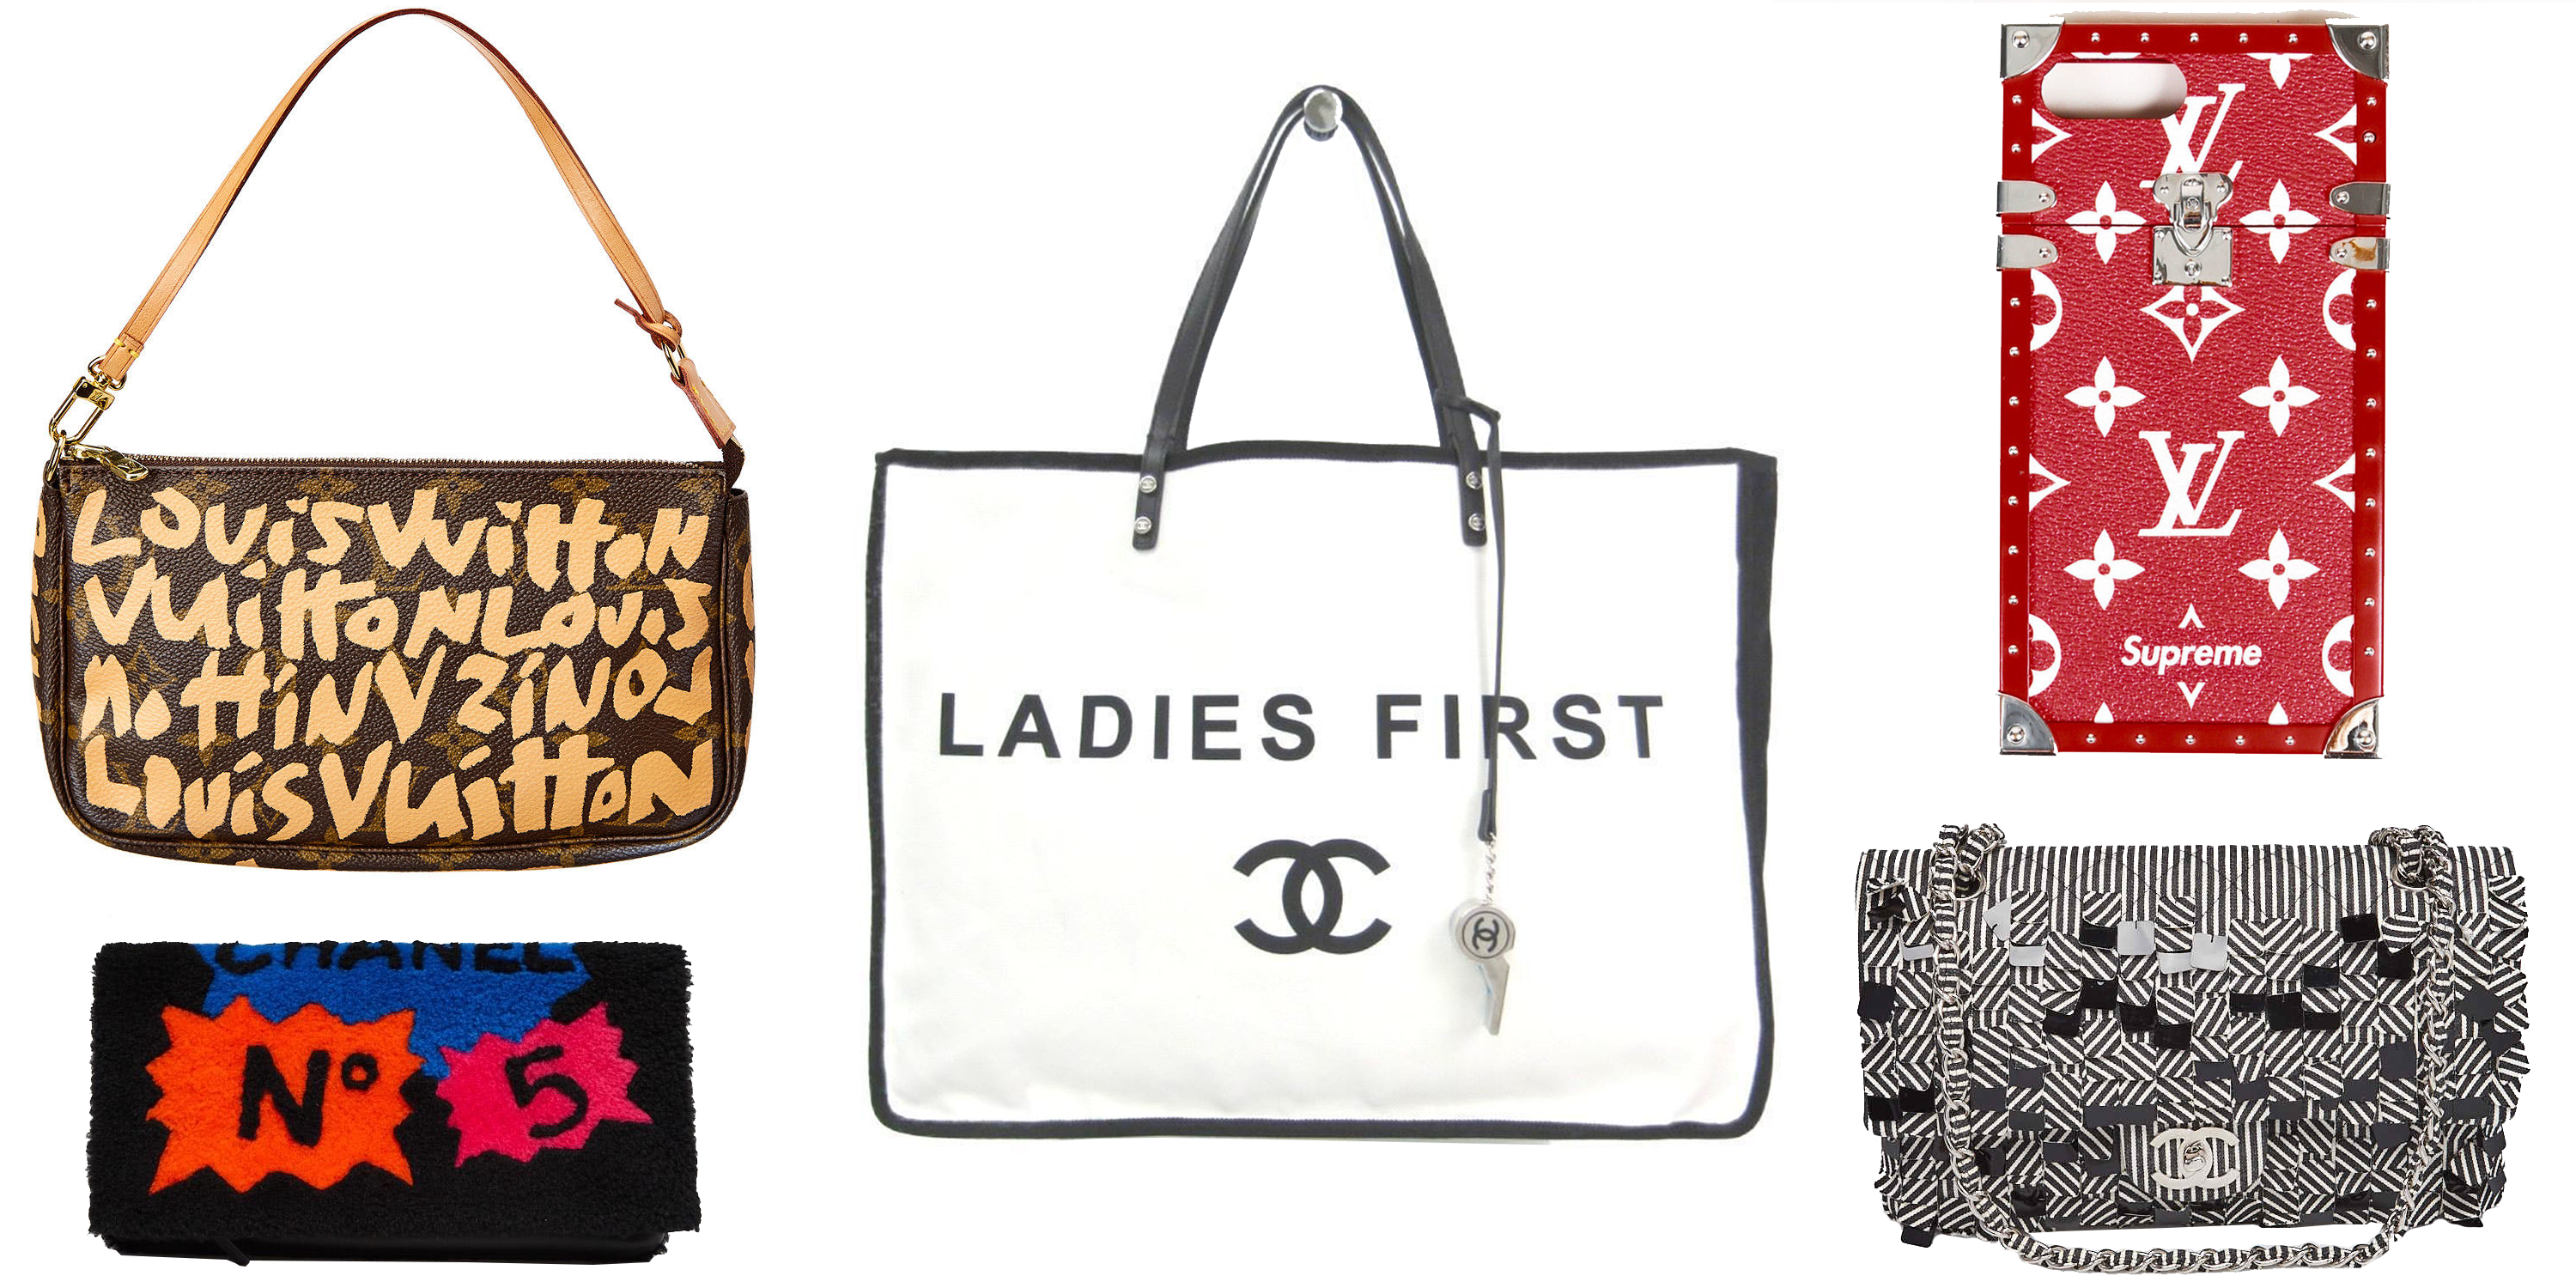 EBay Launches Rare Chanel And Louis Vuitton Bags For October